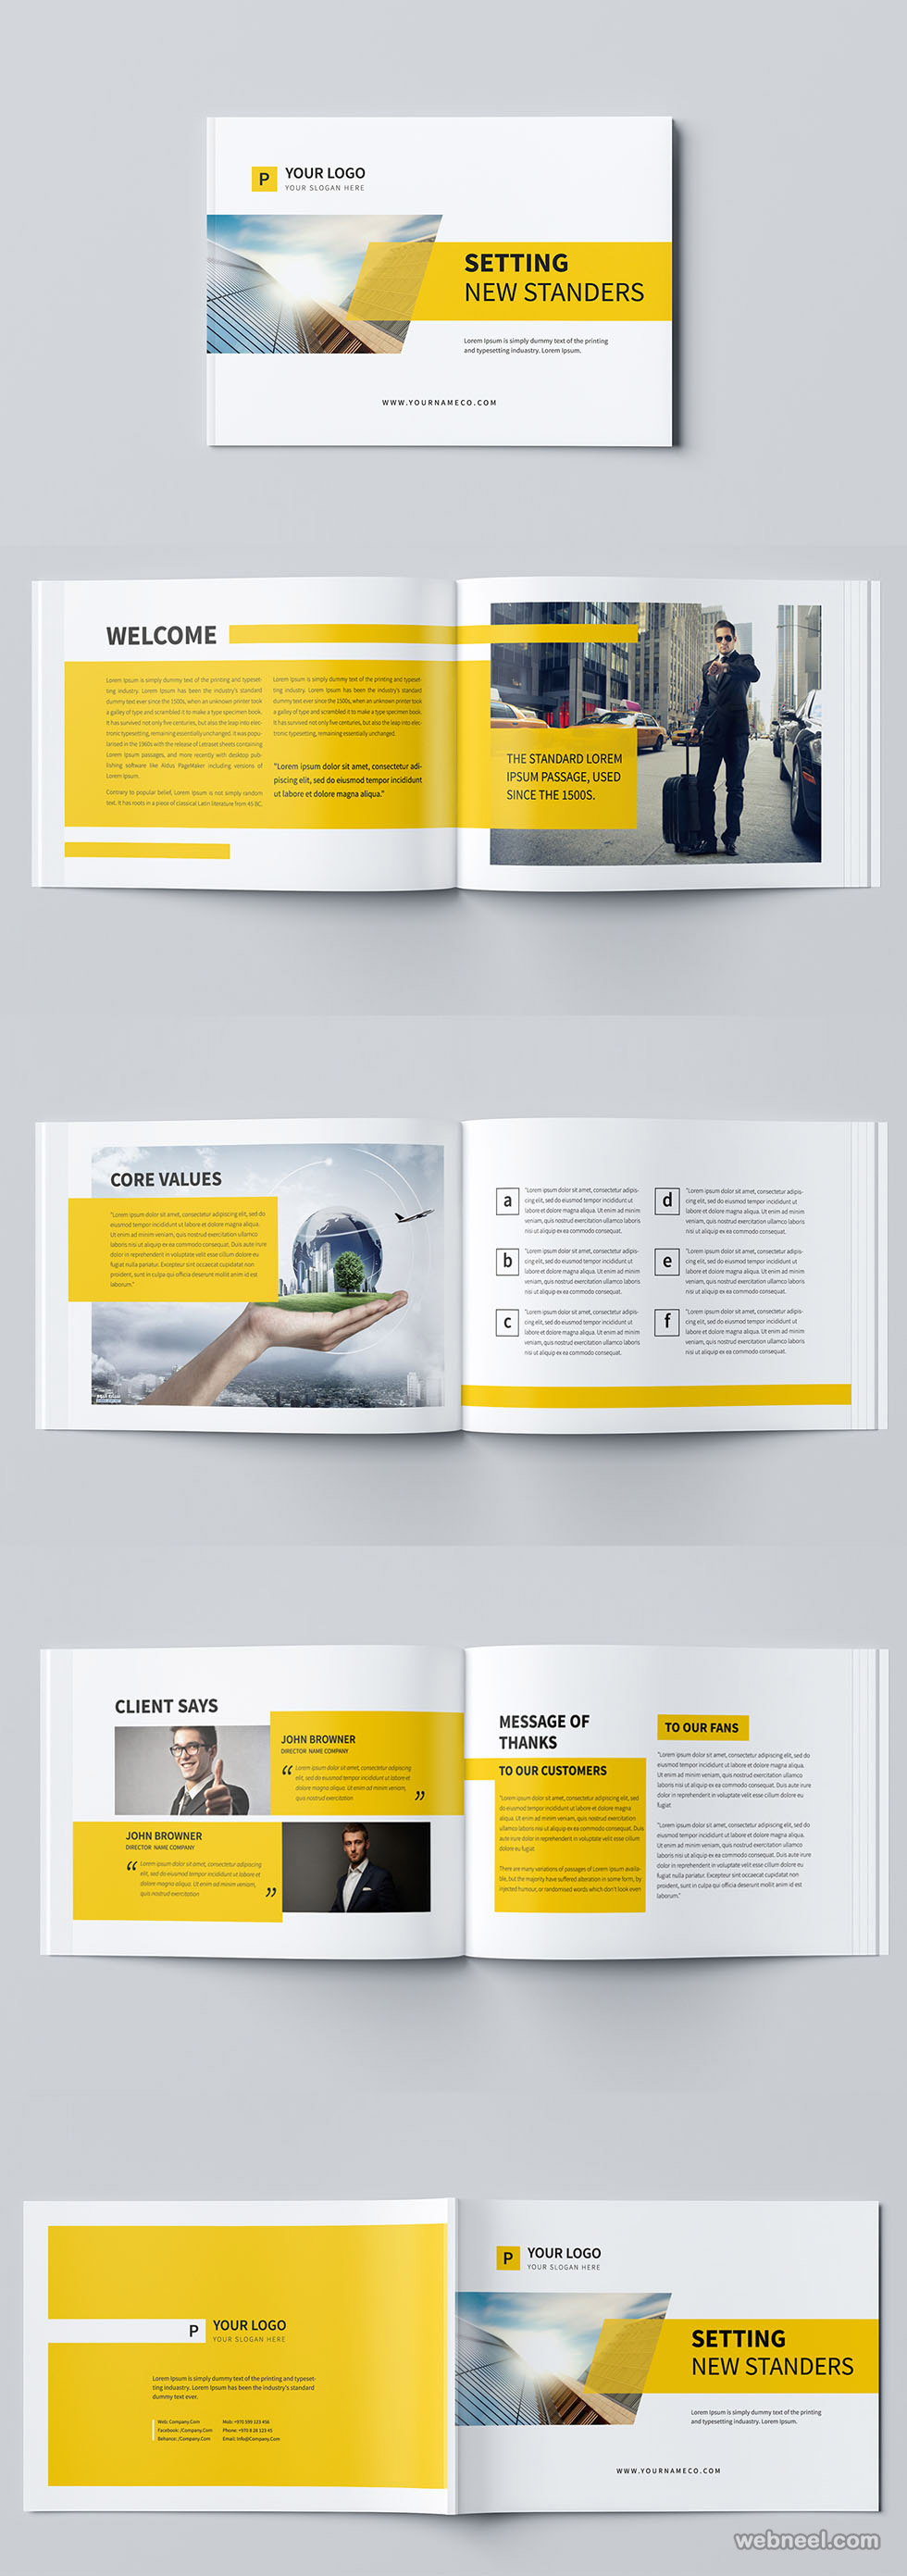 brochure design by mohammed gharabli